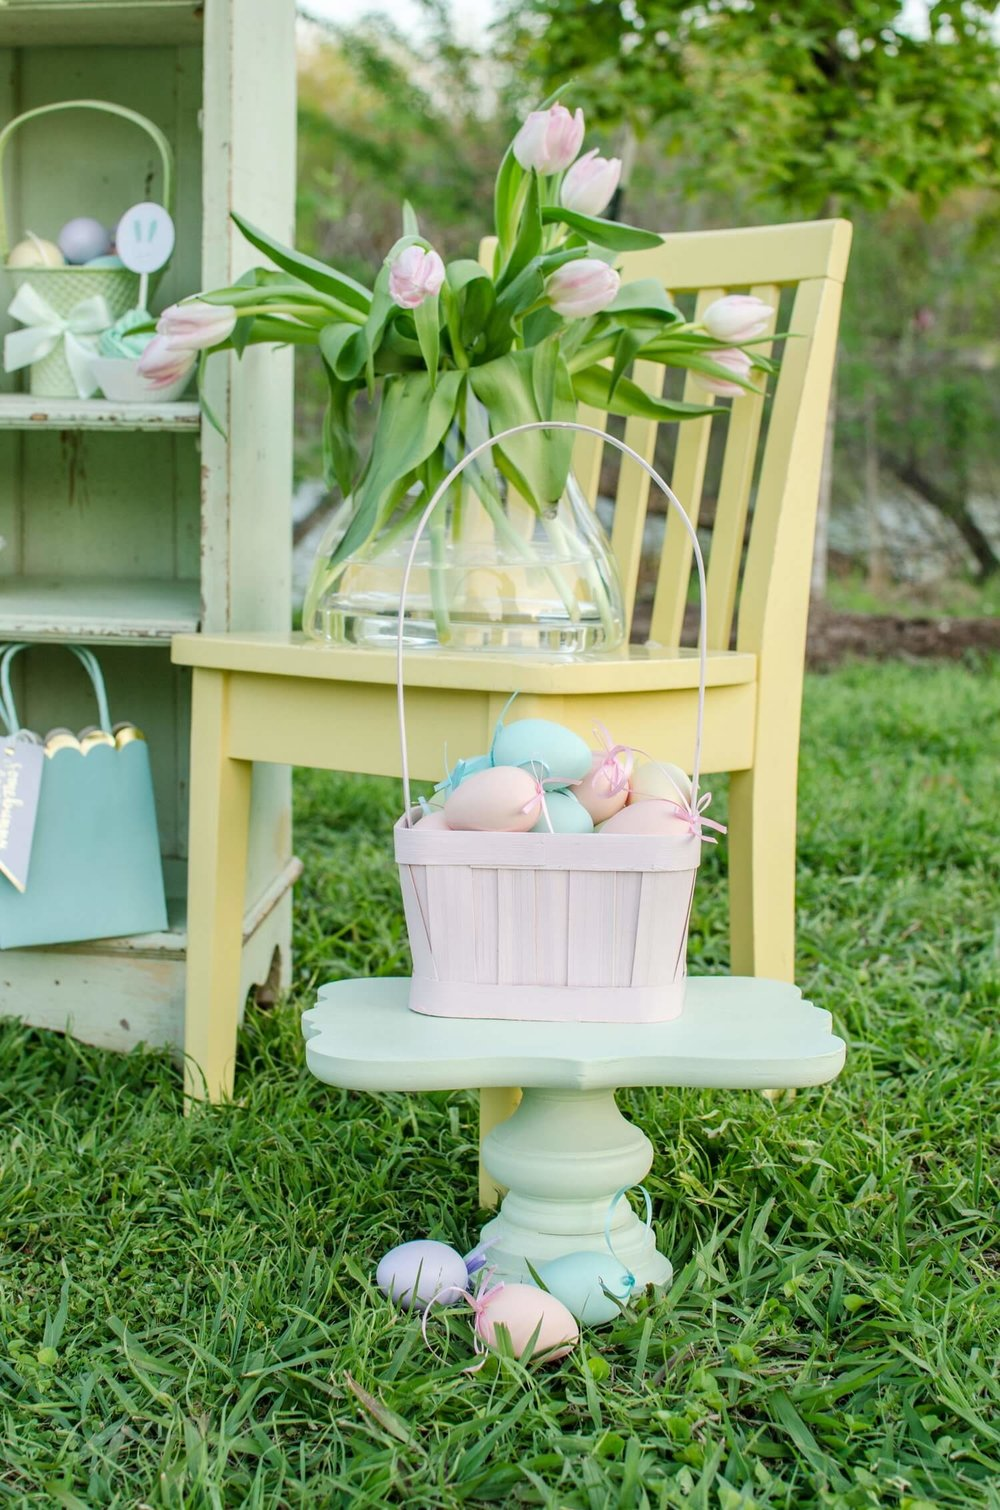 Easter party decor ideas / Shabby Chic party decor / Easter party ideas / Easter party ideas with kids / Easter basket idea / Styled by Carolina from MINT Event Design / www.minteventdesign.com